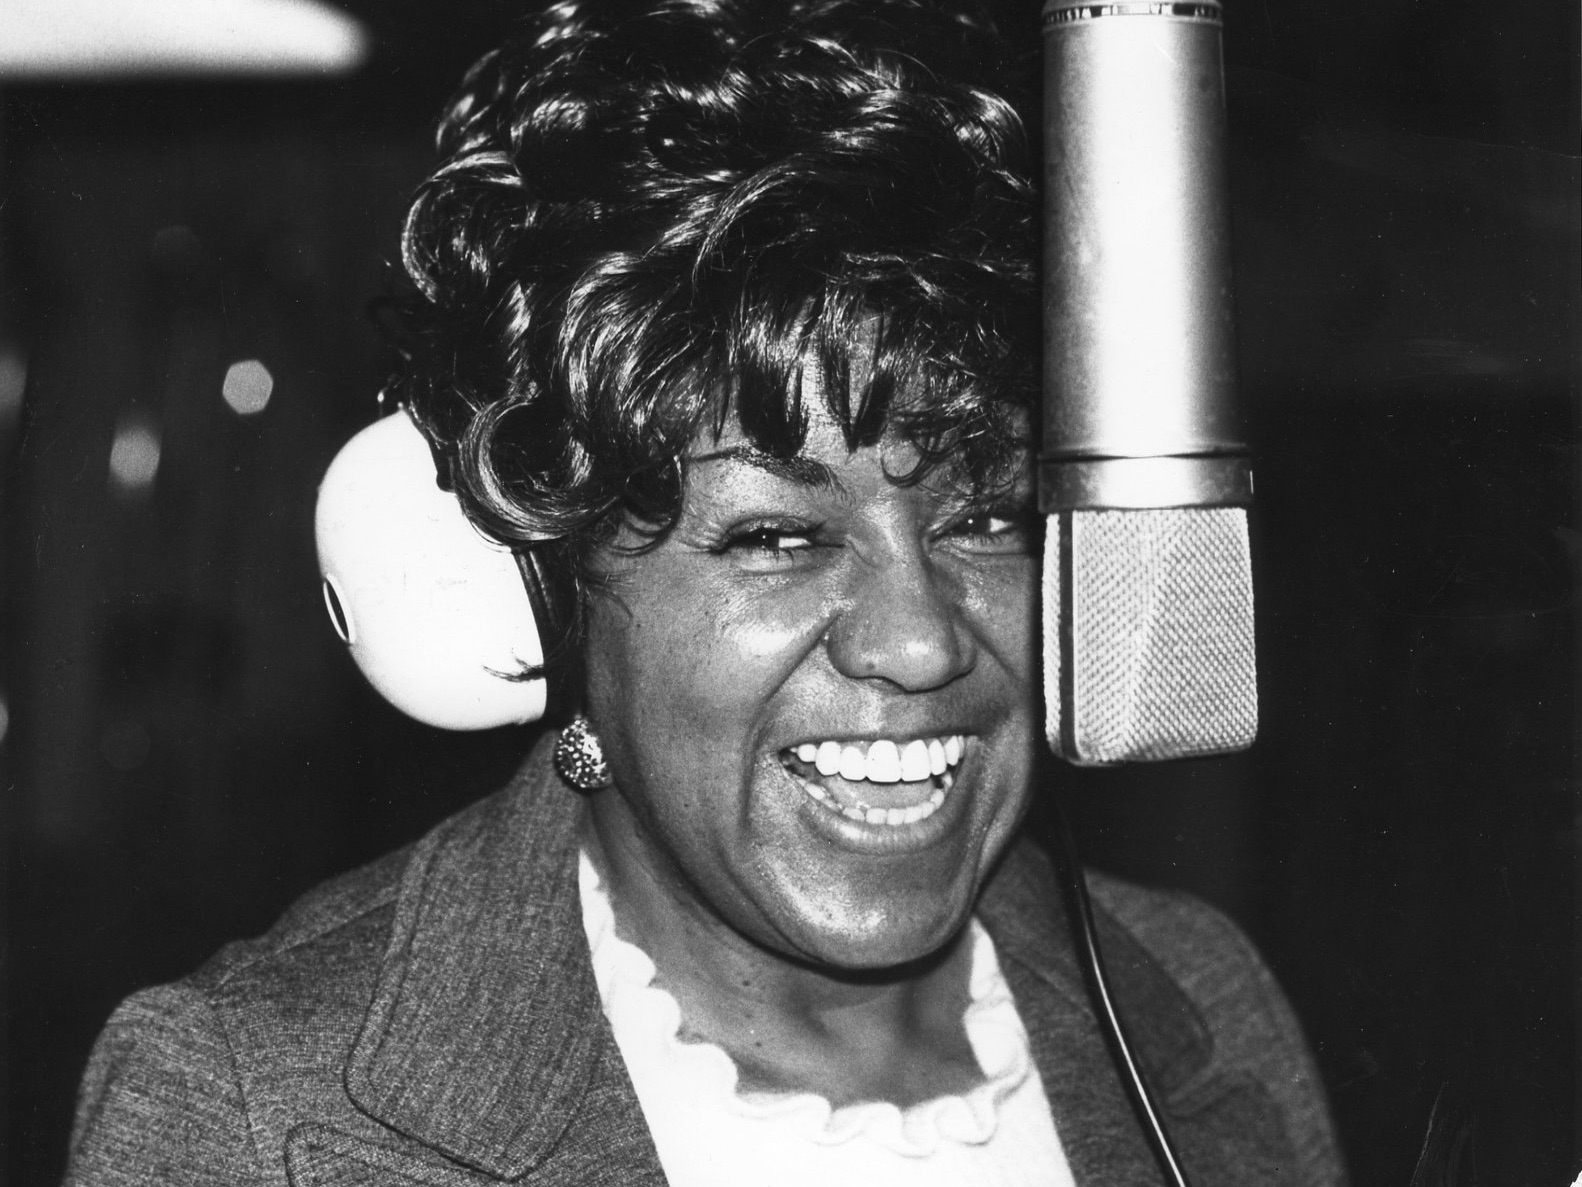 Image of POC songwriter Rose Marie McCoy smiling behind a microphone